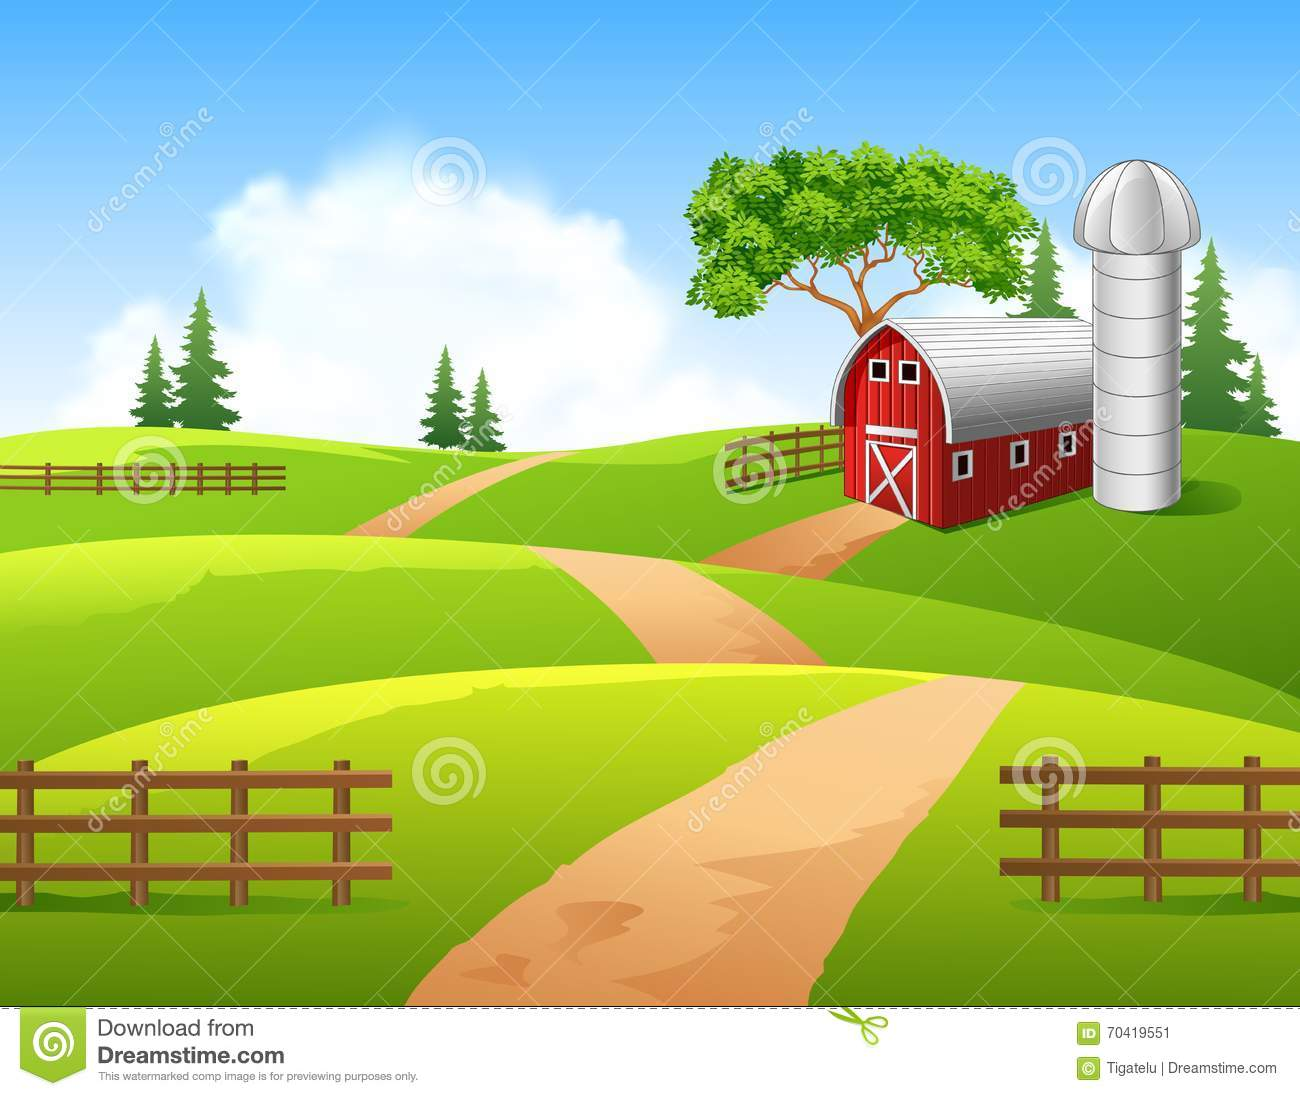 Cartoon Illustration Of Farm Background Stock Vector - Image: 70419551